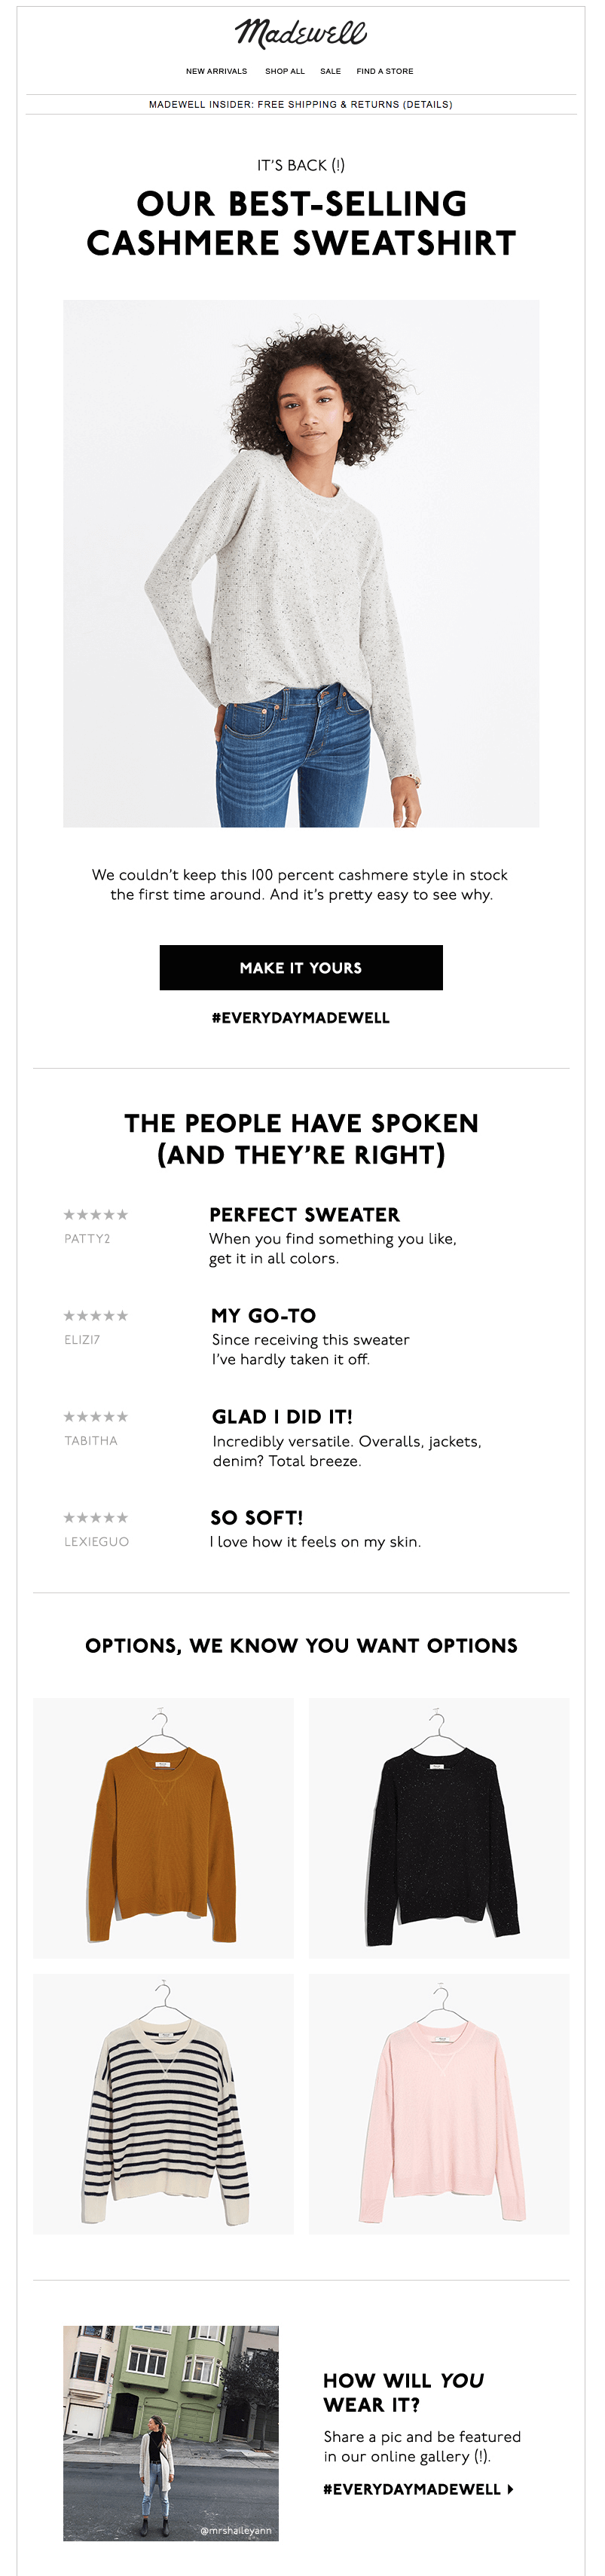 Madewell - user-generated content in email